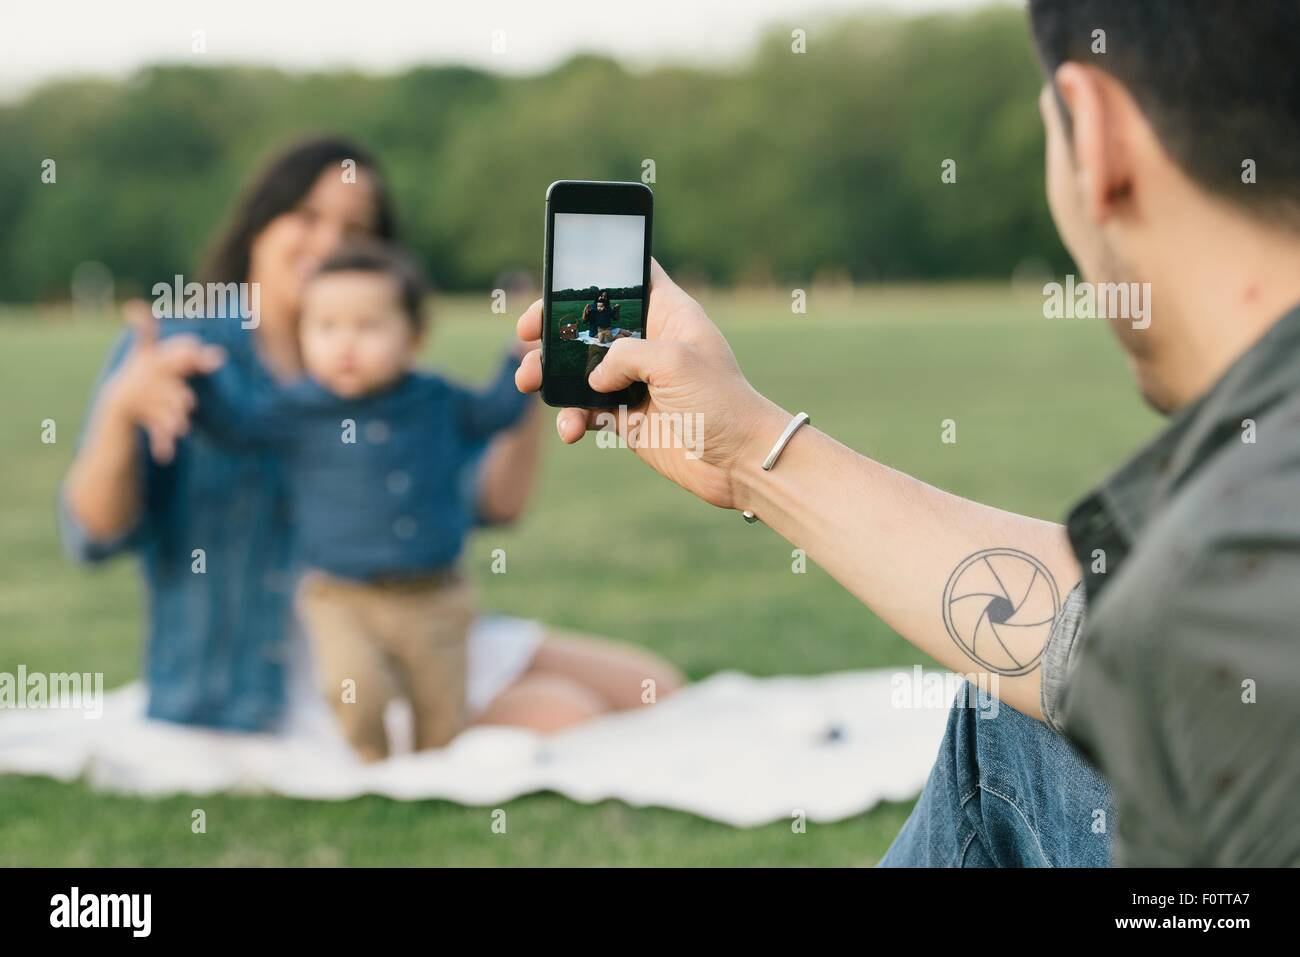 Young man using smartphone to take photograph of family - Stock Image